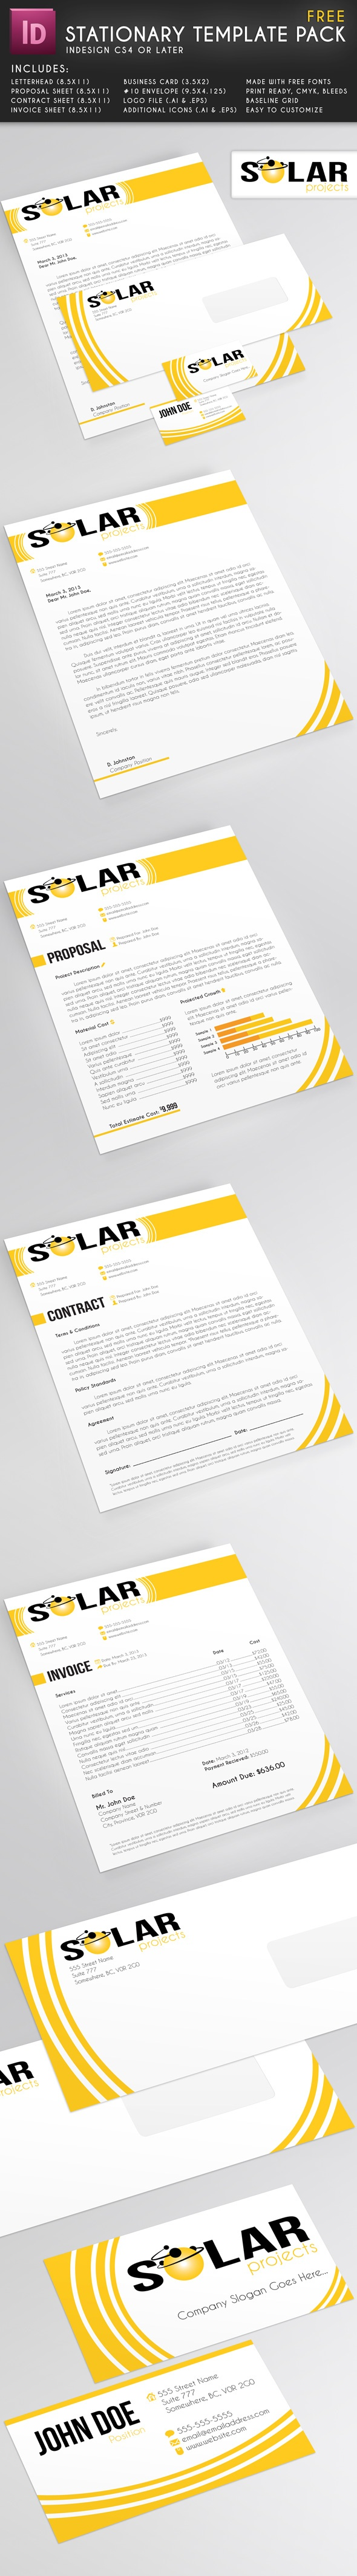 Stationary Template Pack, InDesign CS4/CS5, Free Download, edit freely.